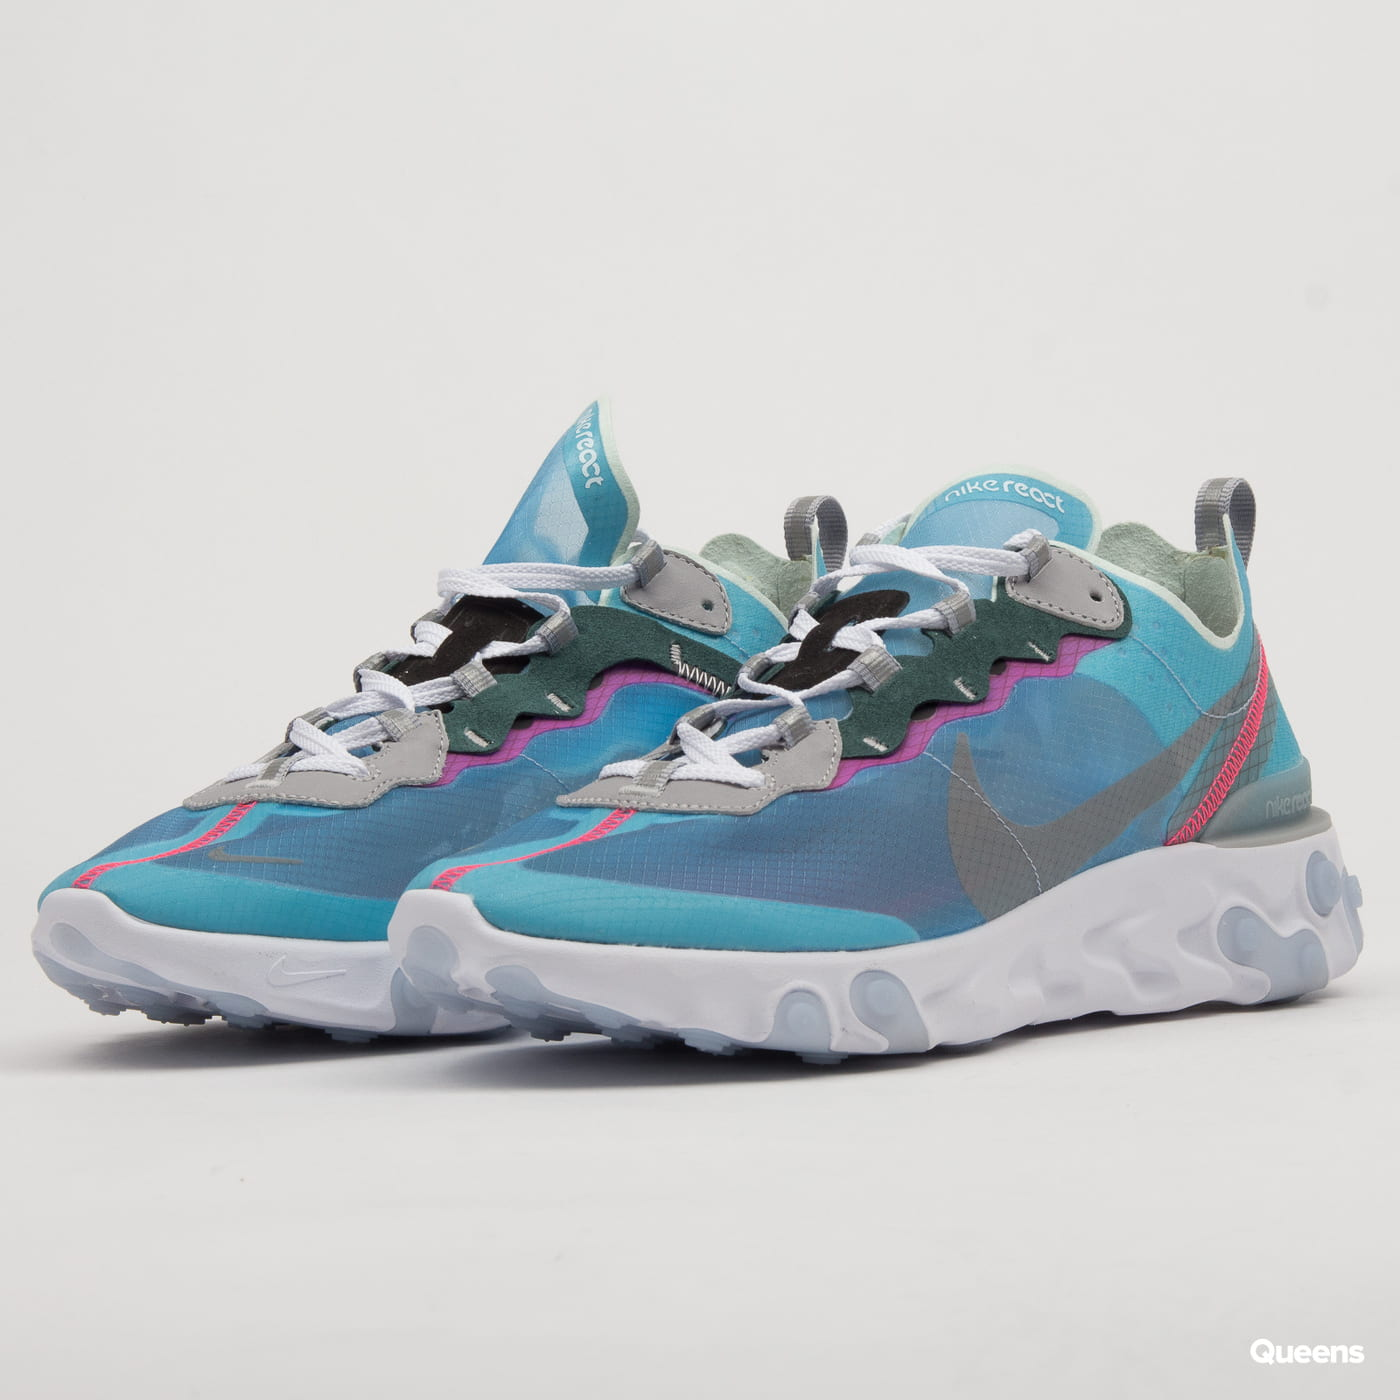 Nike React Element 87 royal tint black wolf grey